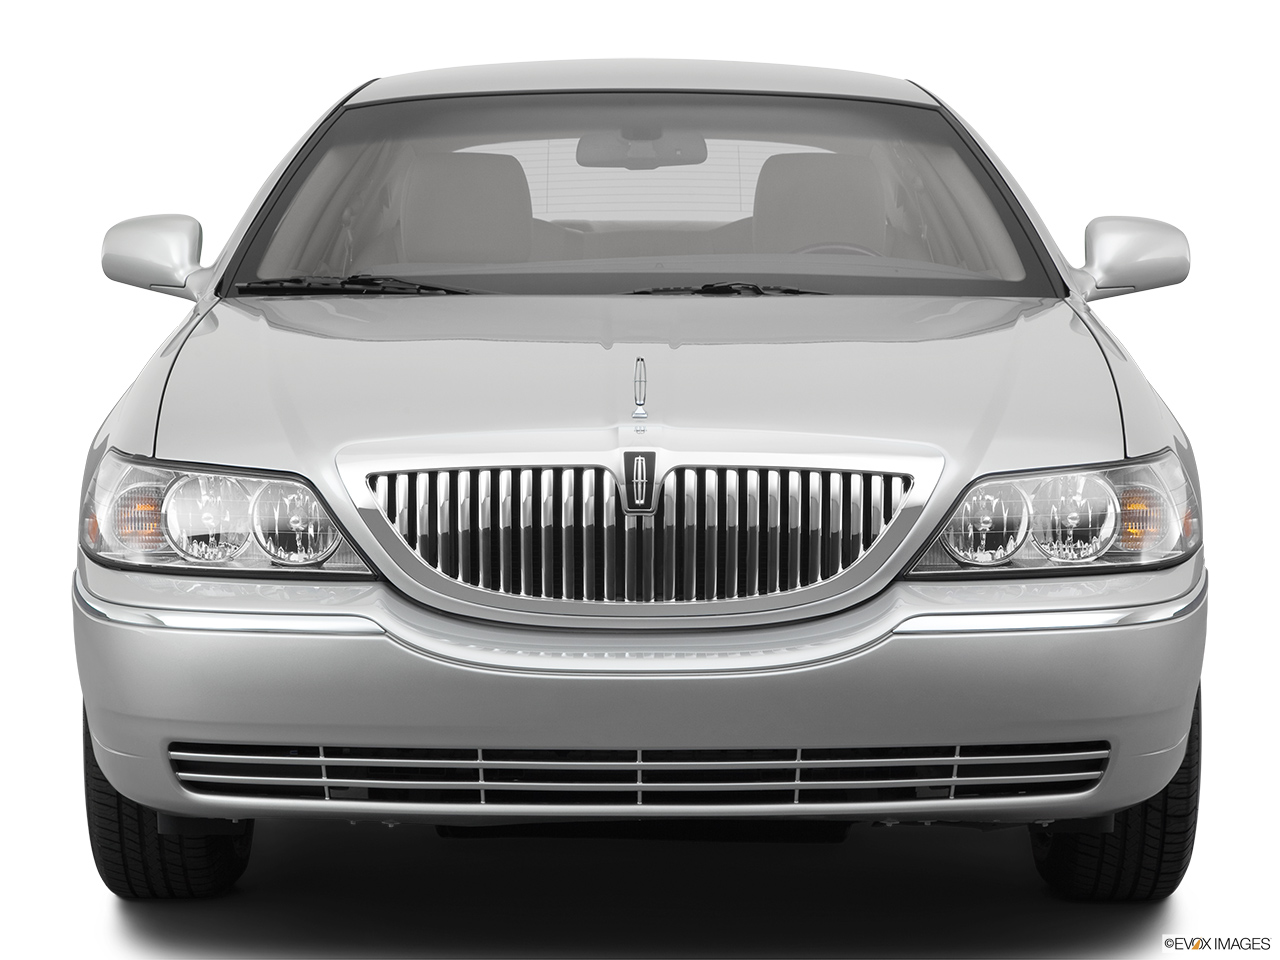 2011 Lincoln Town Car Signature Limited Low/wide front.